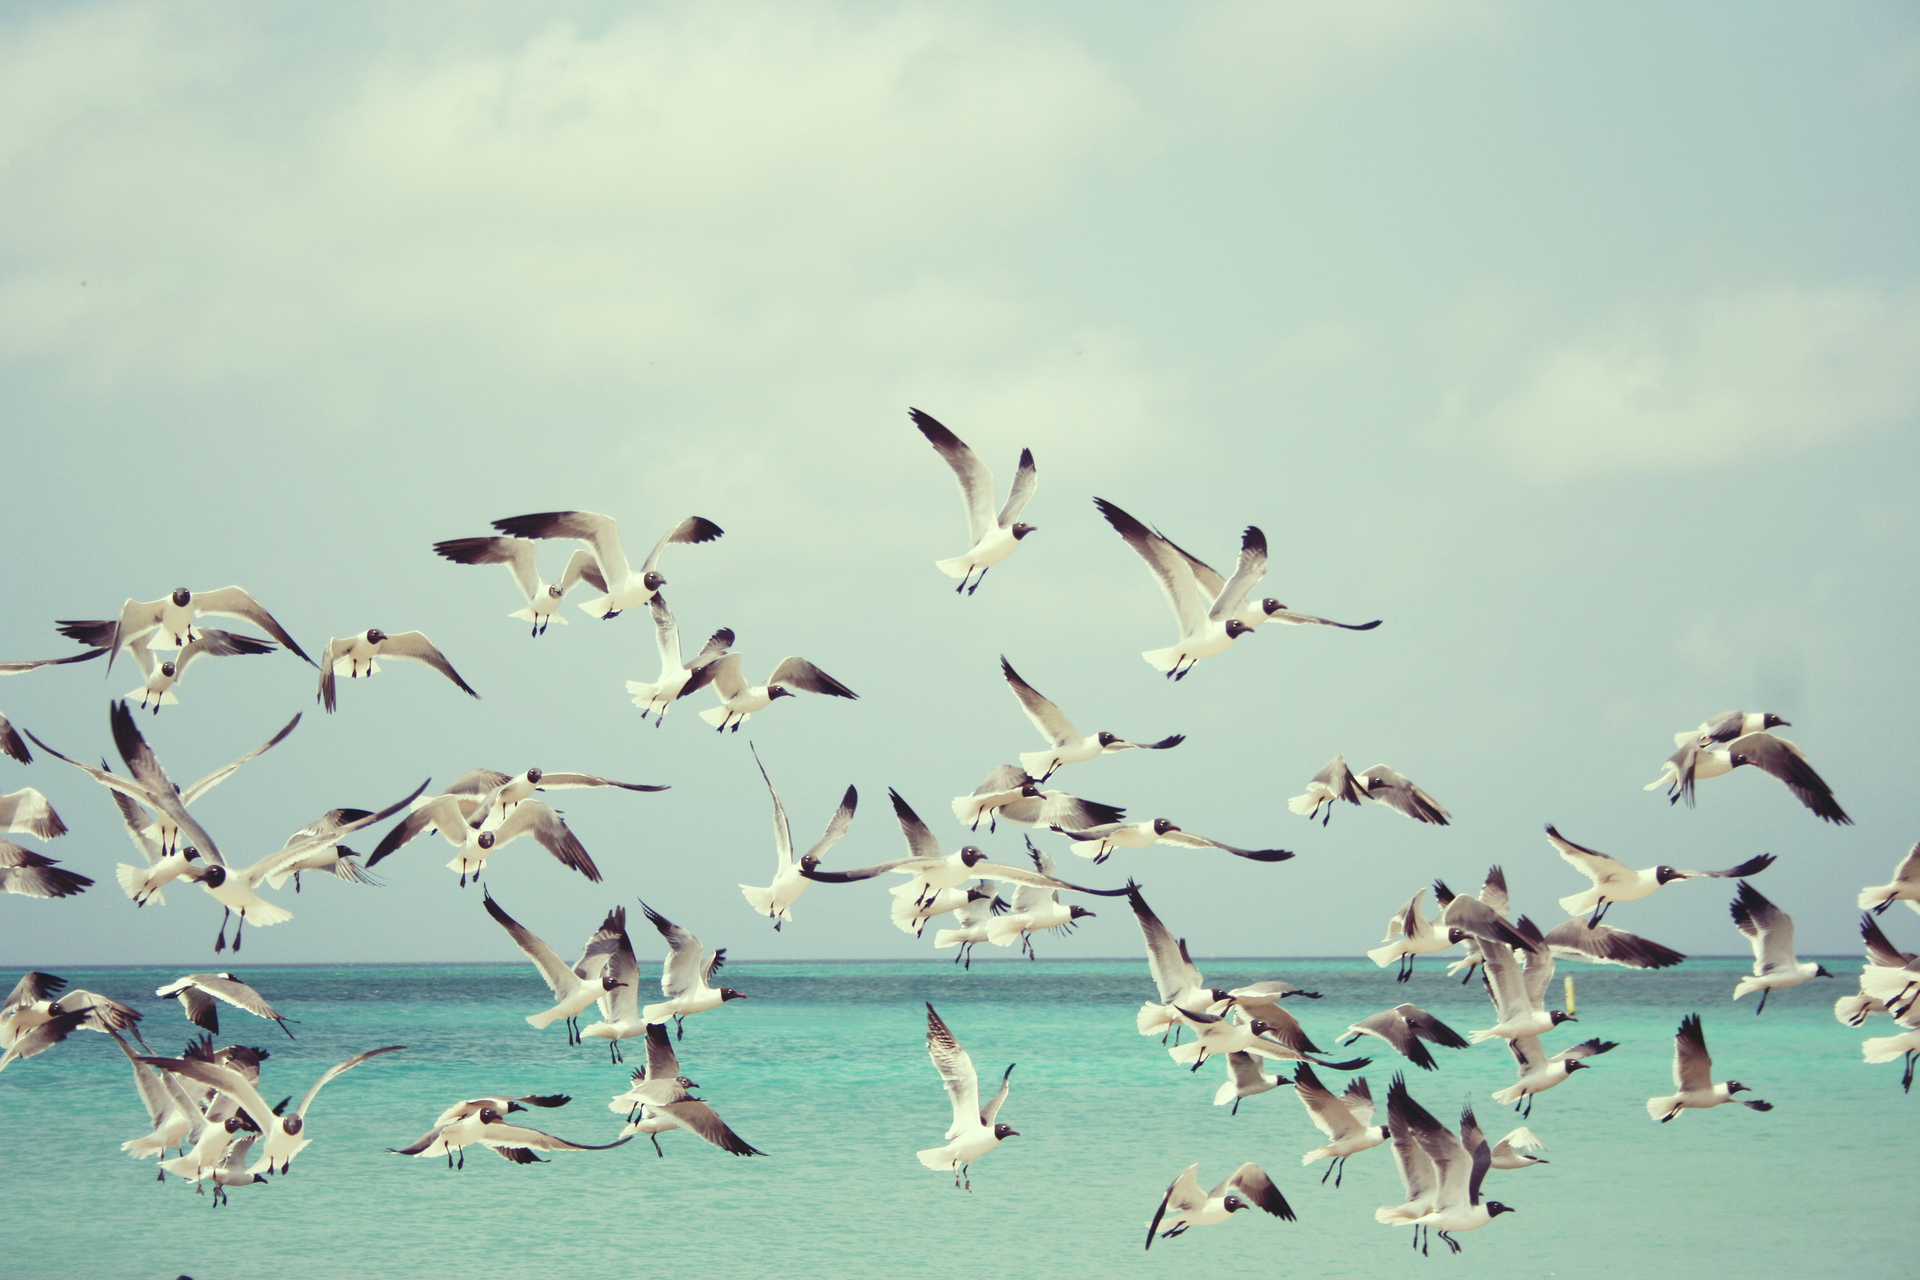 summer-seagulls-flying-1345049-1920x1280